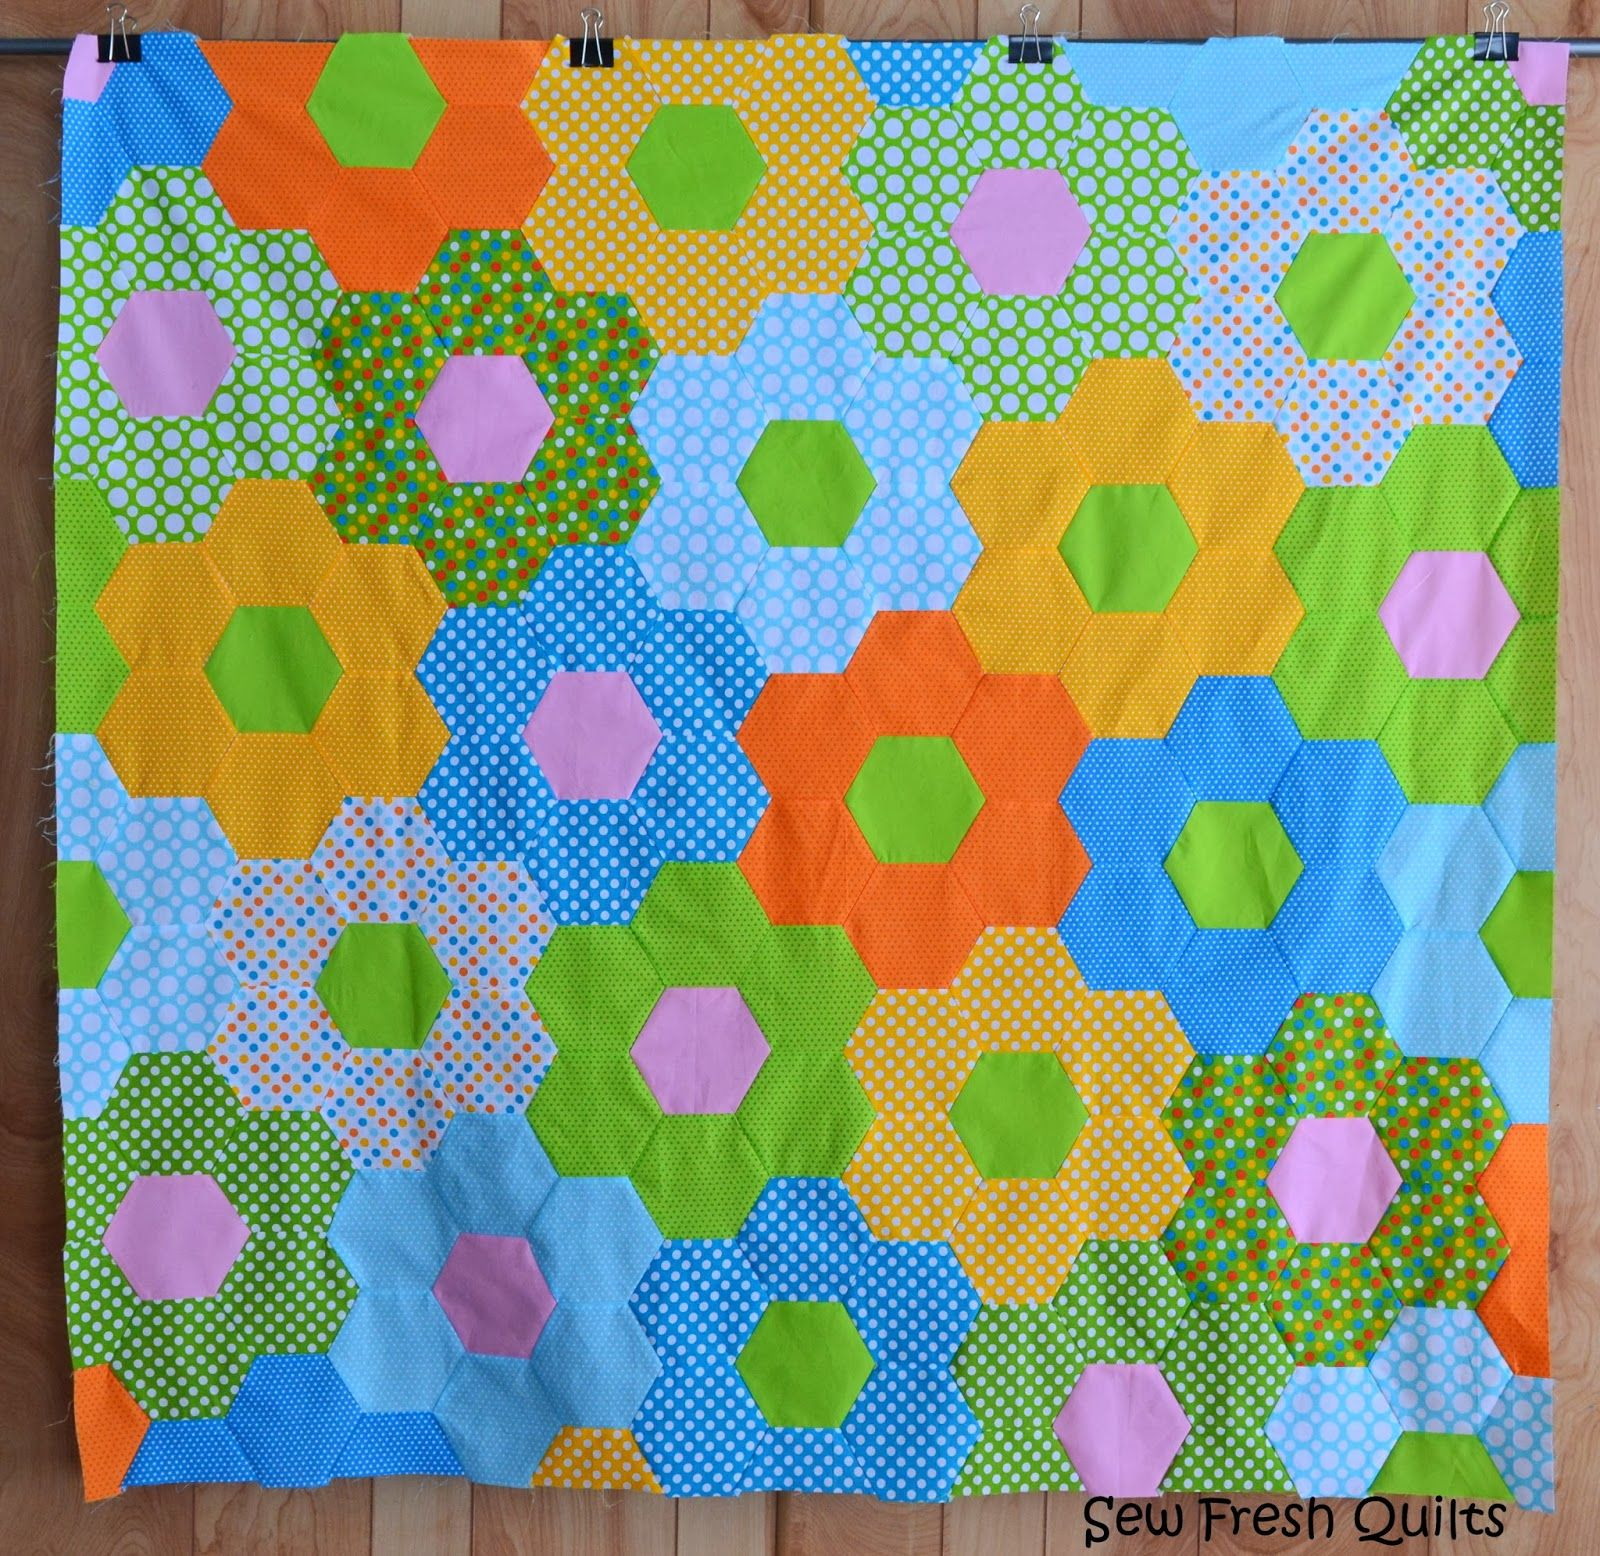 Sew Fresh Quilts Tutorial for Sewing Hexagons by Machine